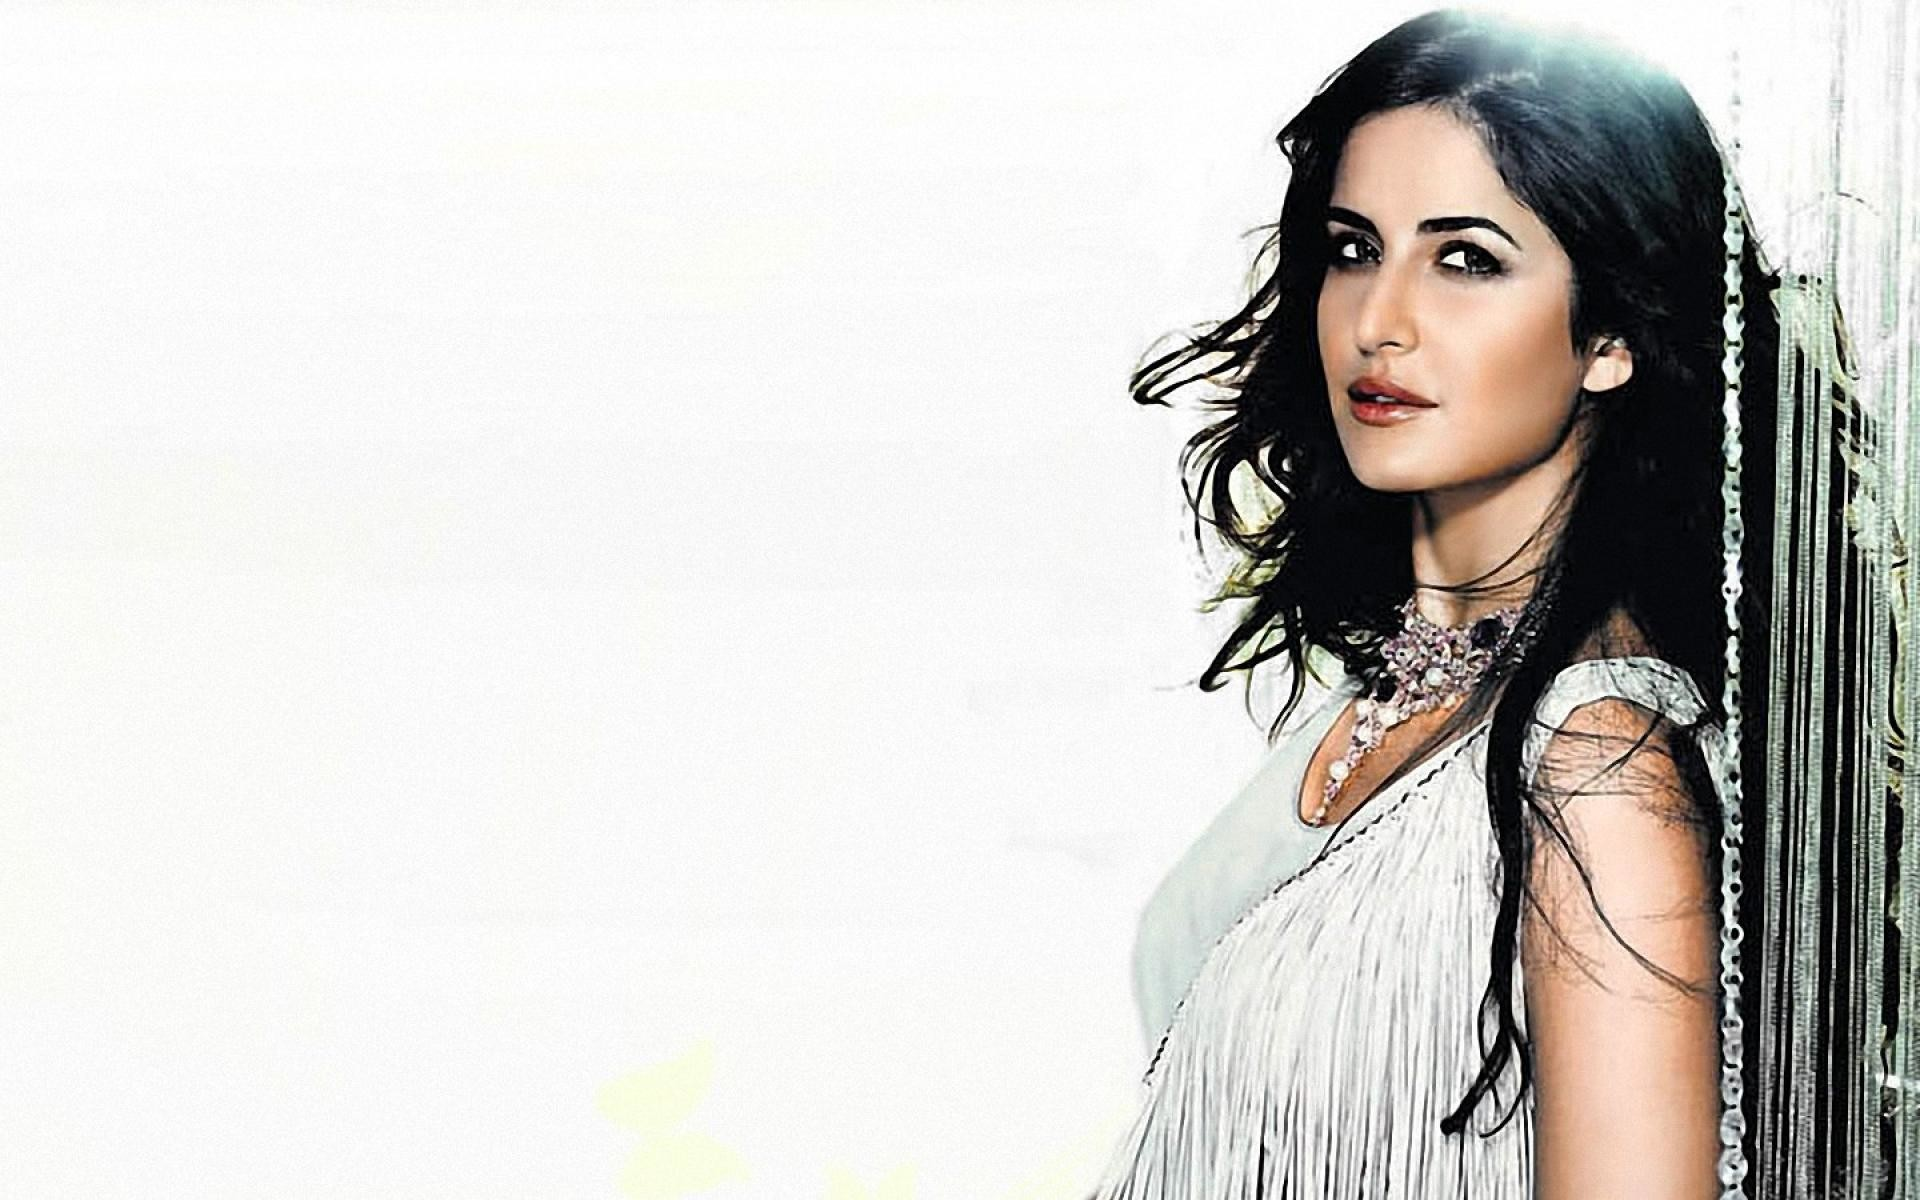 katrina kaif hd wallpapers 1080p 2018 (61+ images)